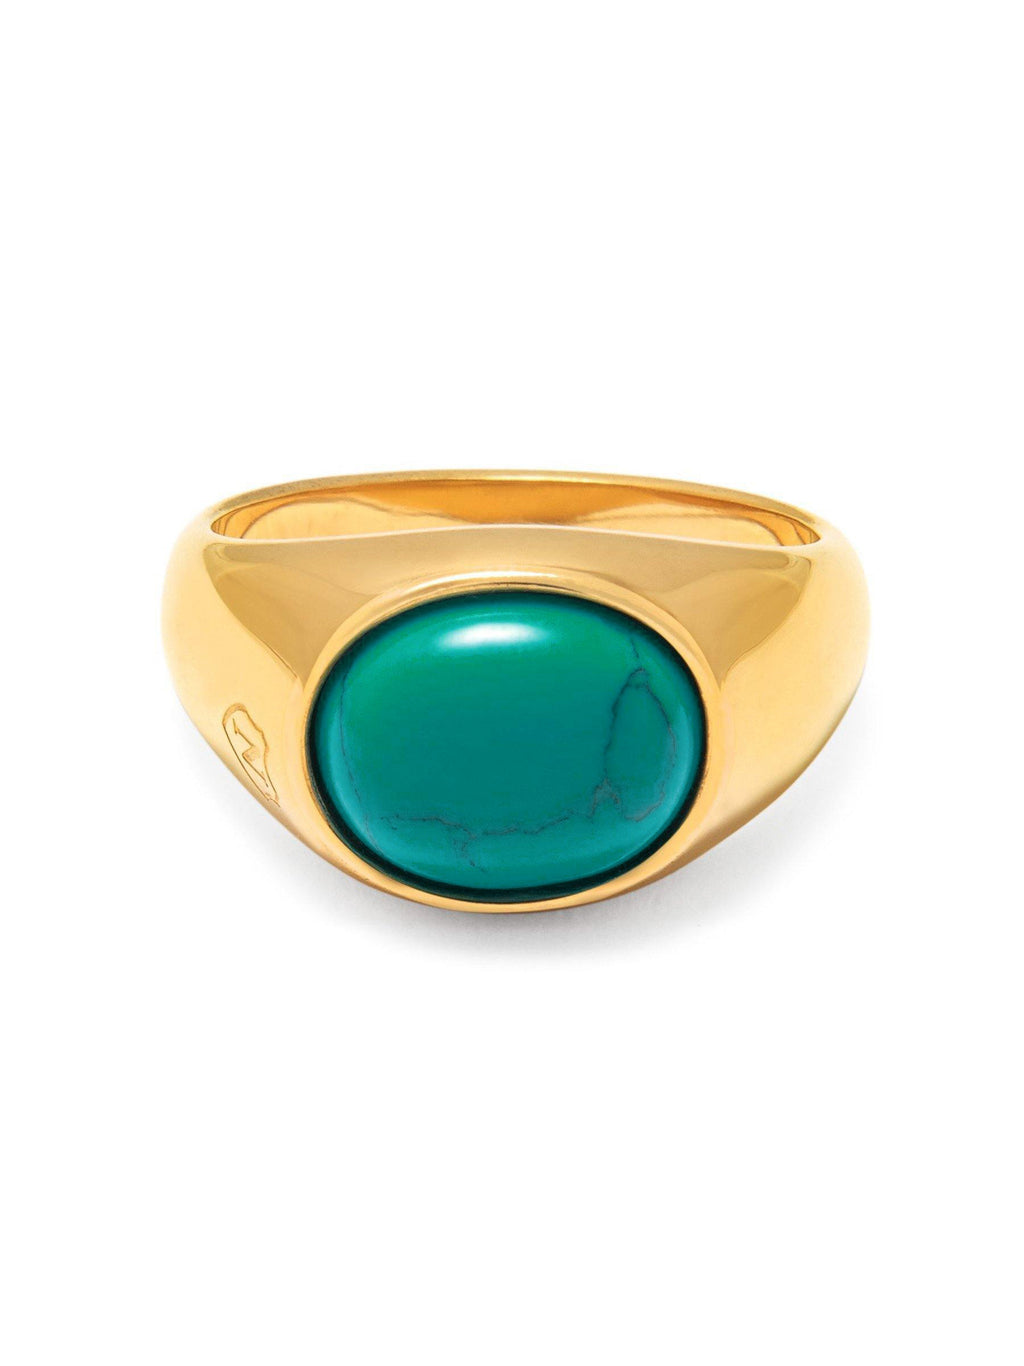 Men's Gold Oval Signet Ring with Turquoise